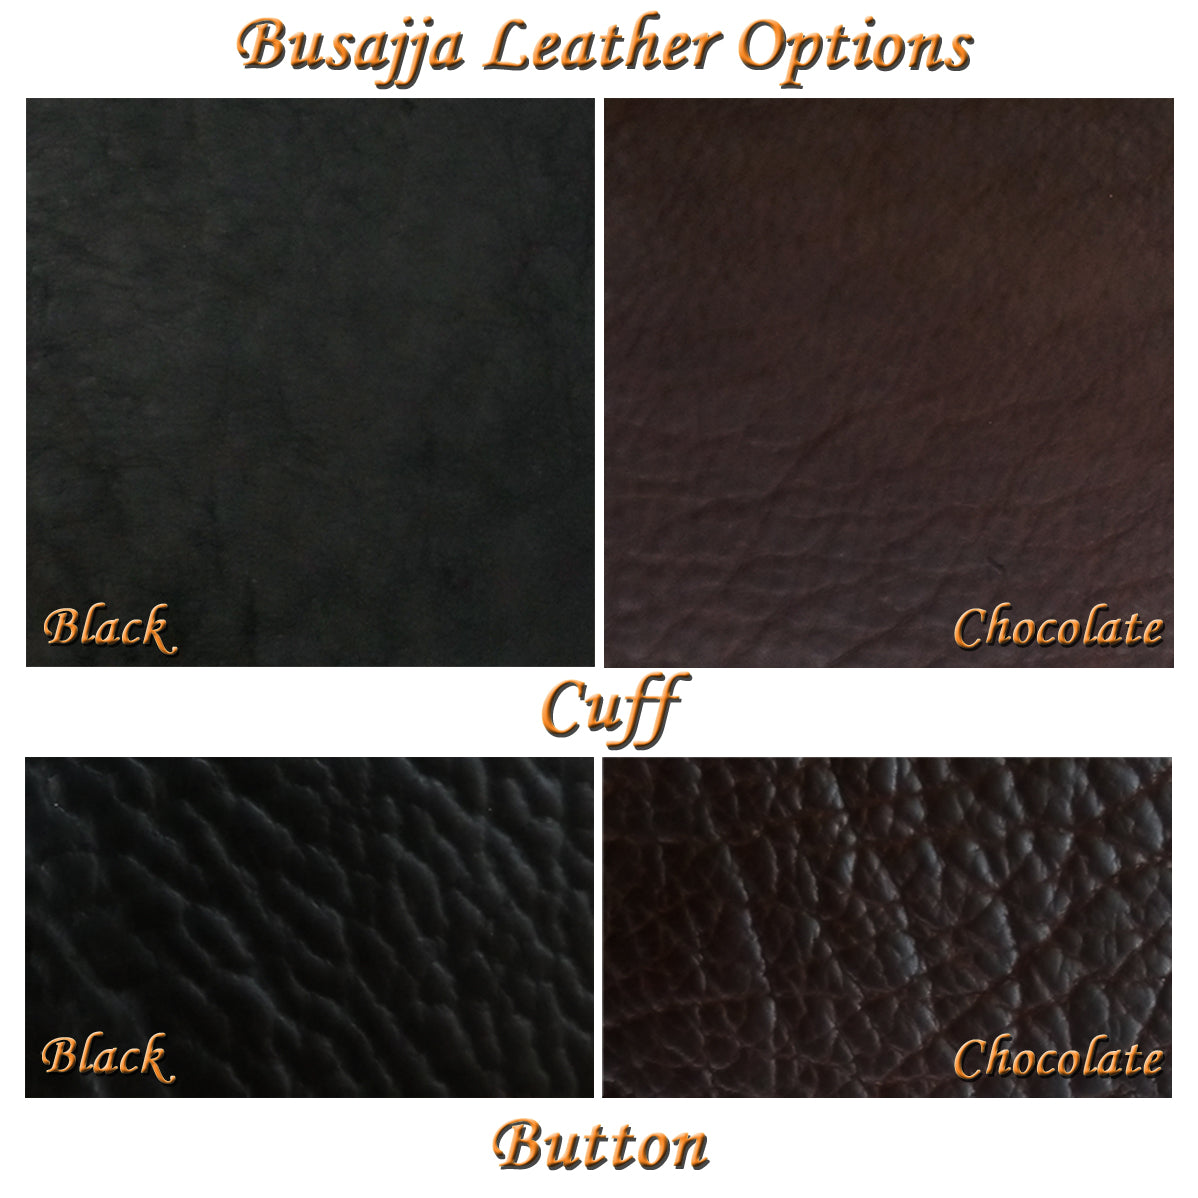 Busajja Leather Wrap Cuff Bison Leather Color Choices